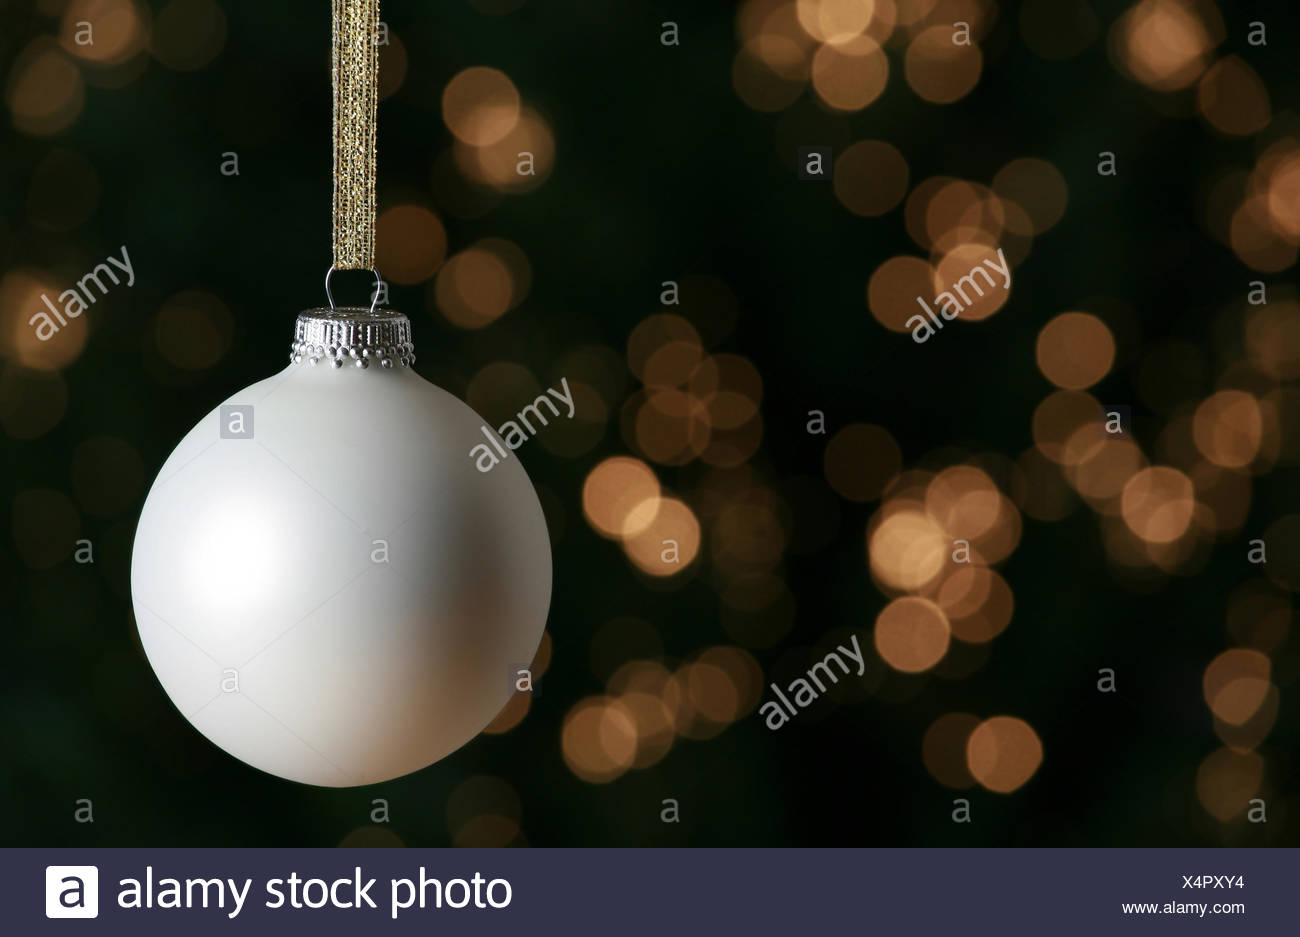 tree, lights, ornament, dapper, accosting, pretty, prettily, prettier, - Stock Image